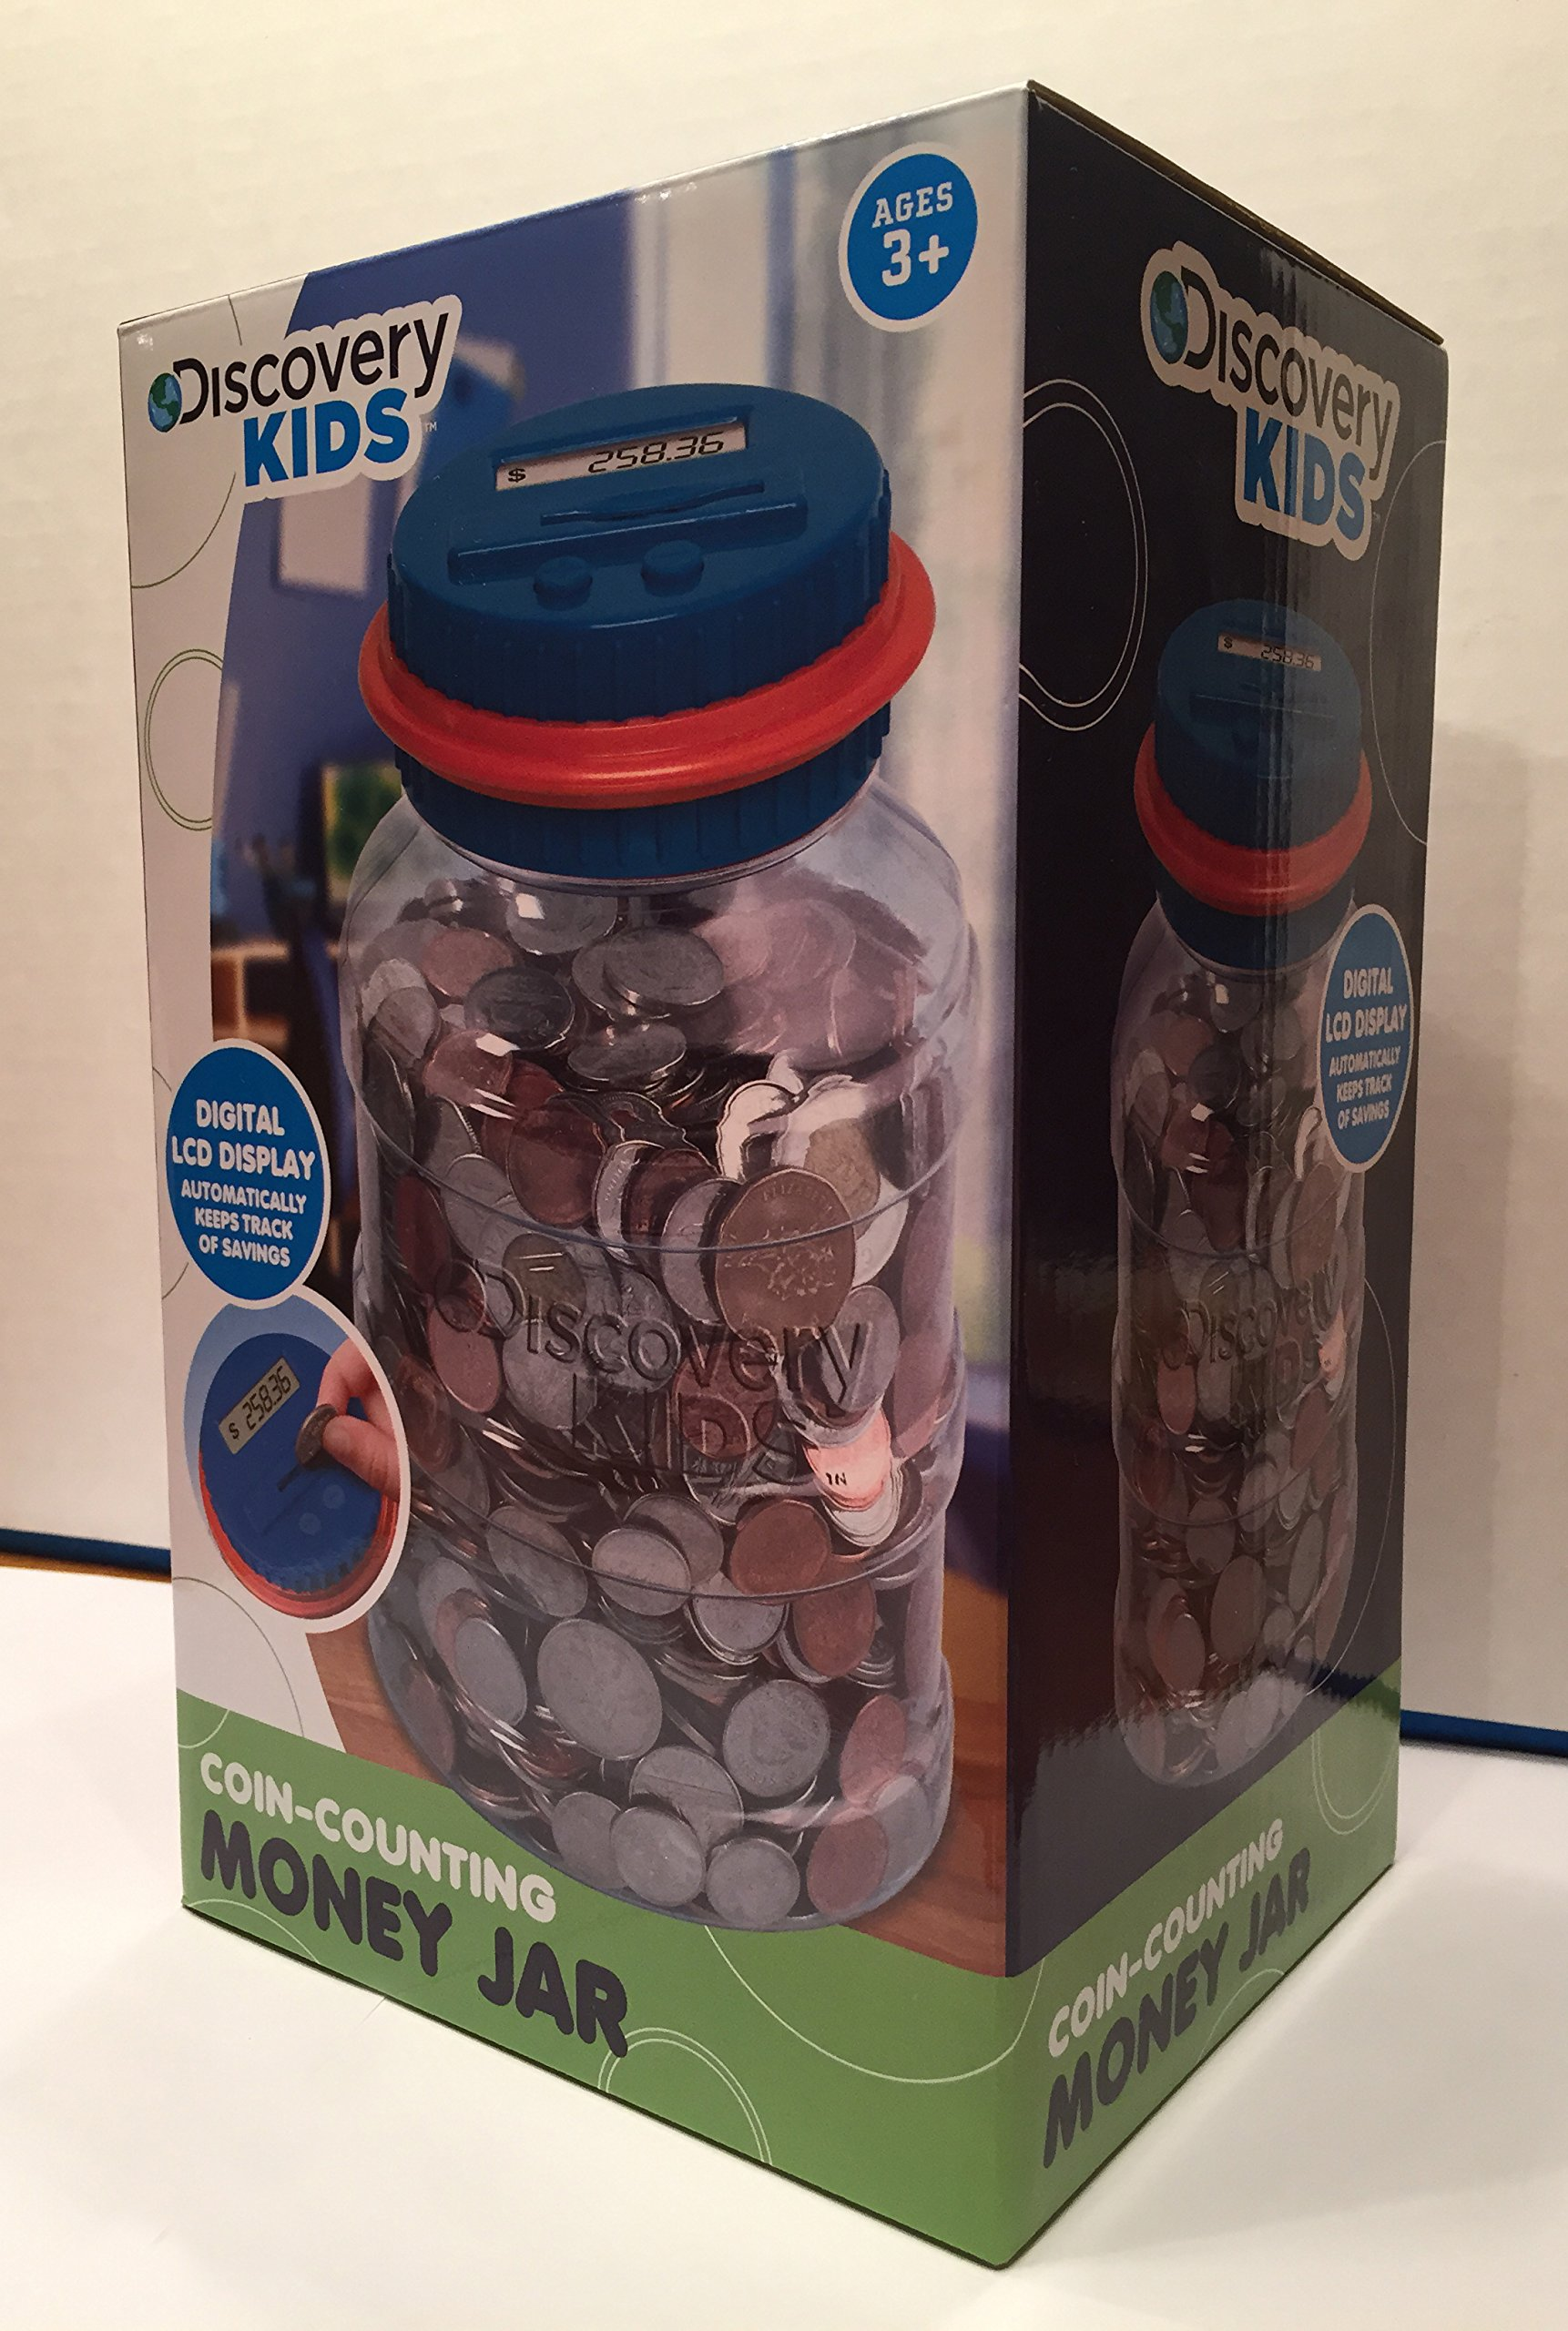 Piggy Bank With Counter Discovery Kids Coin Counting Money Jar Electronic Bank